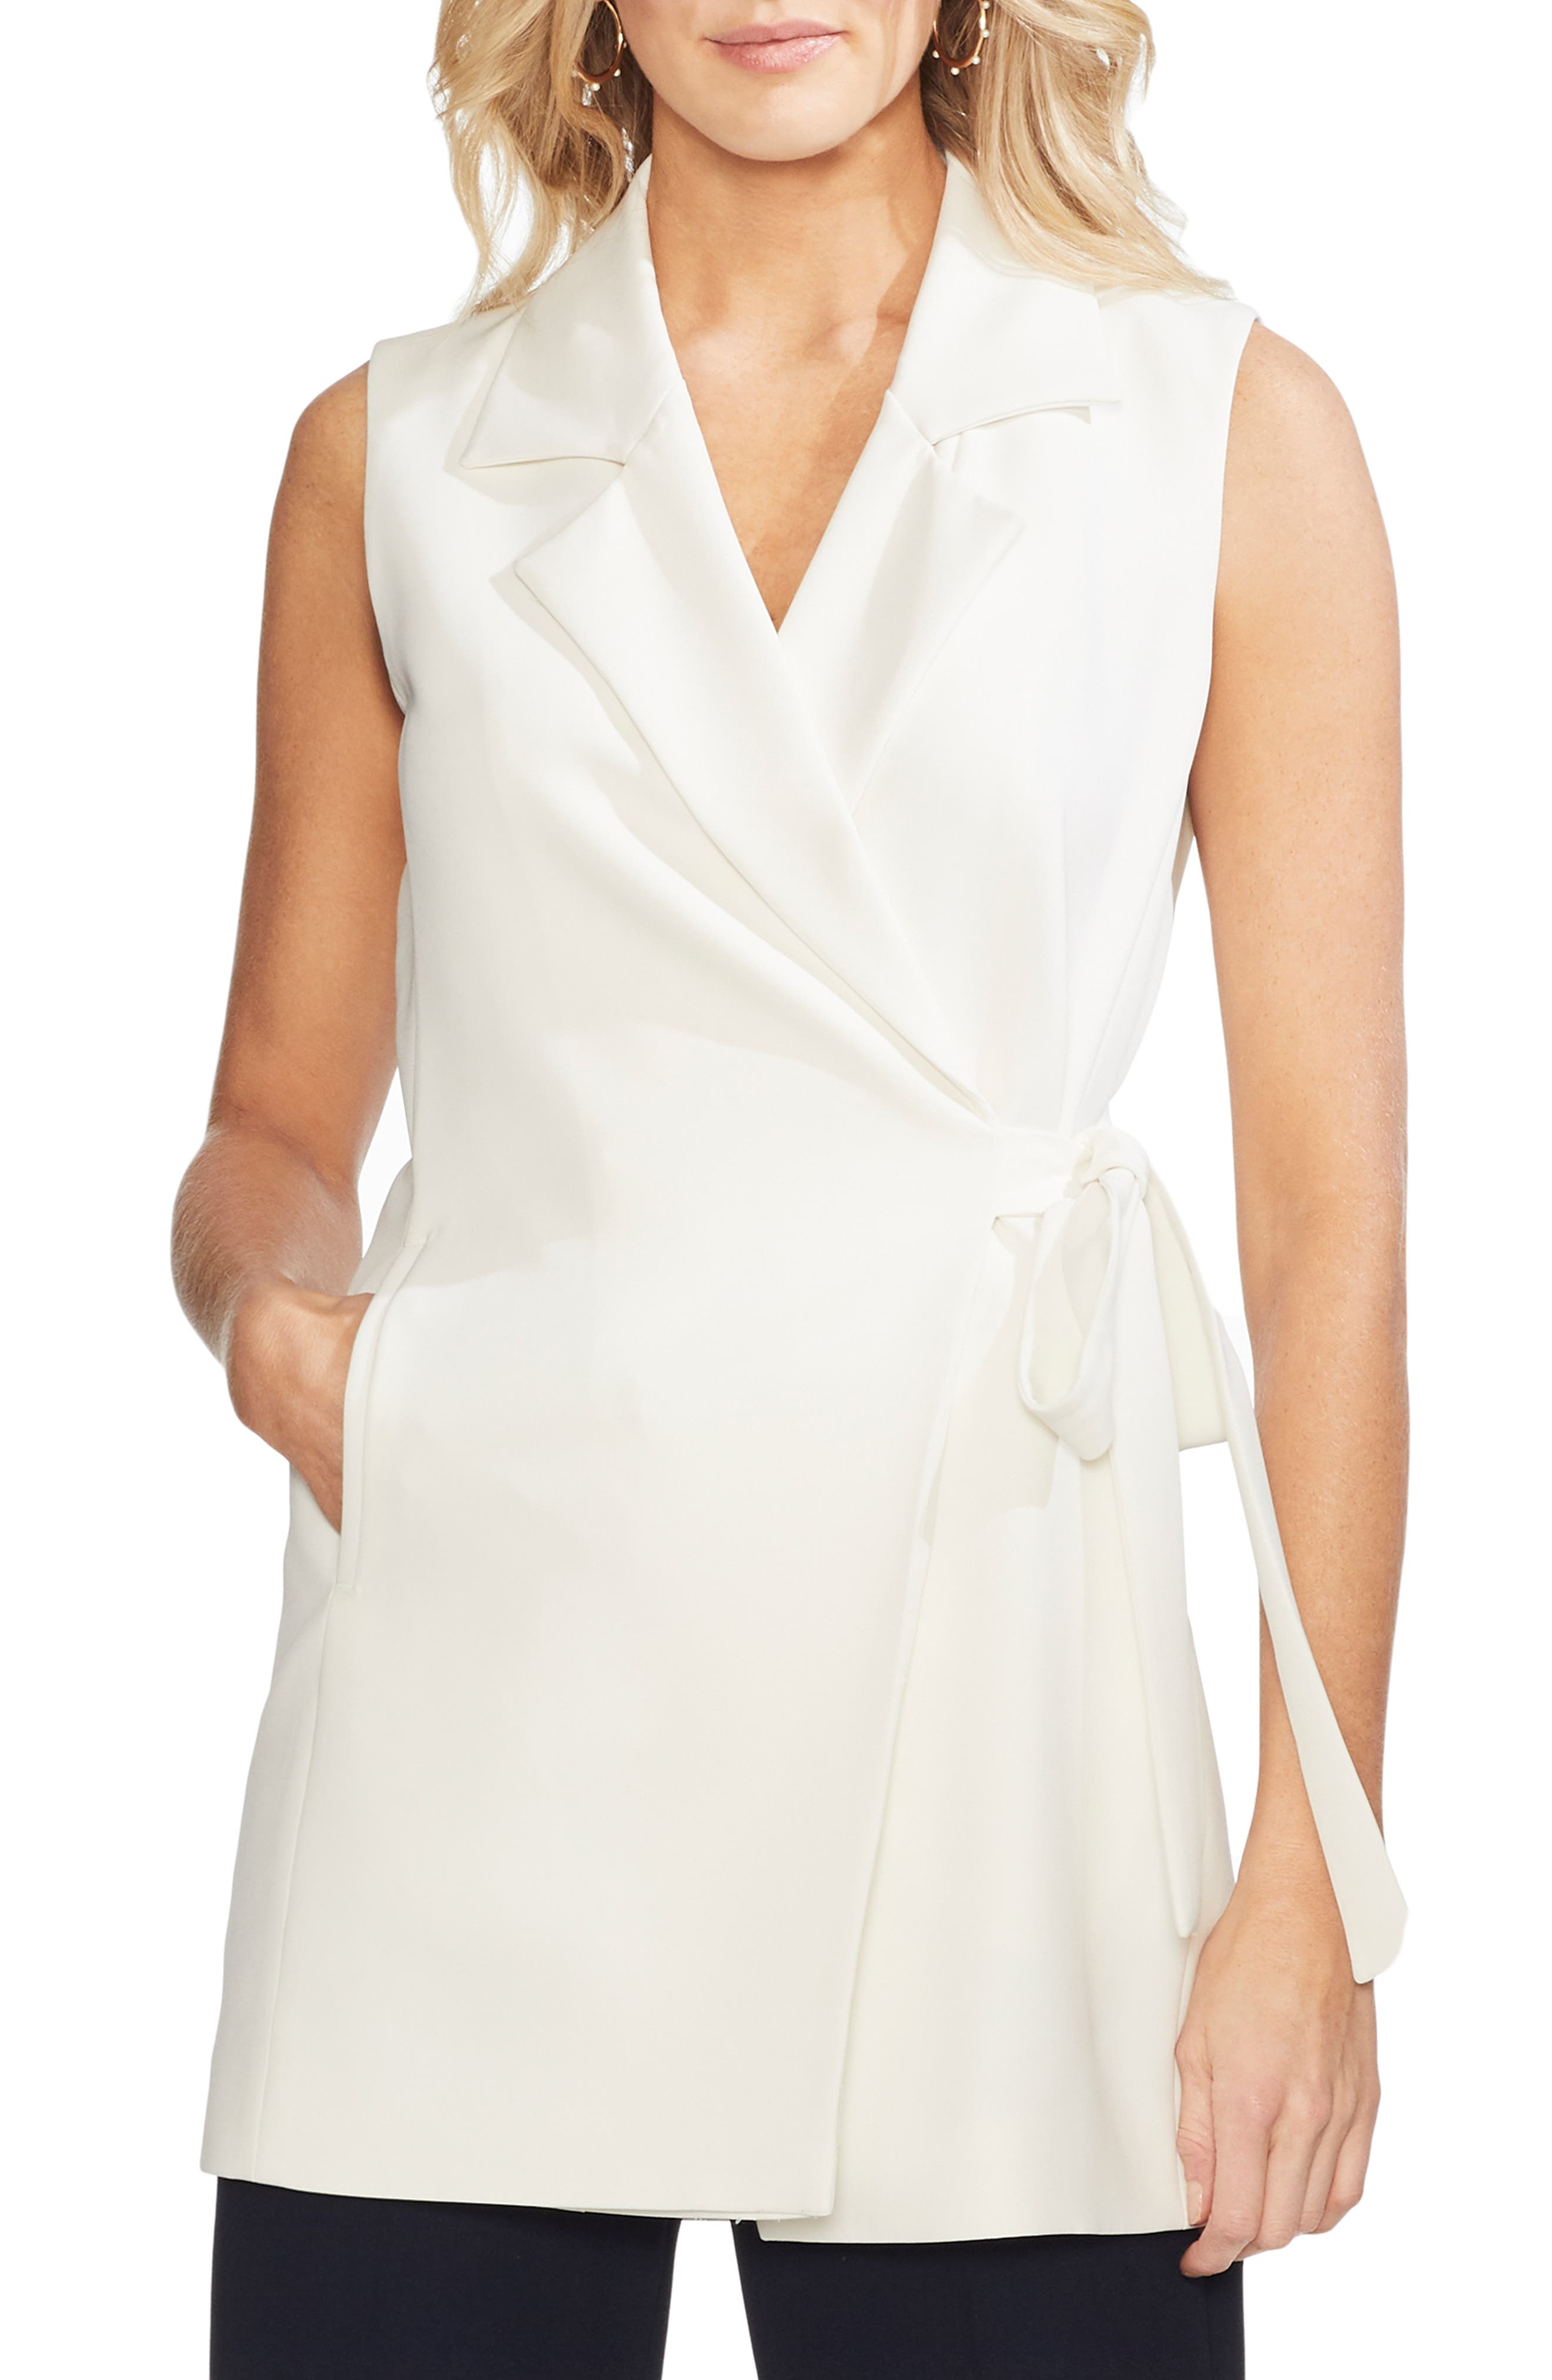 Vince Camuto Tops SLEEVELESS WRAP TOP